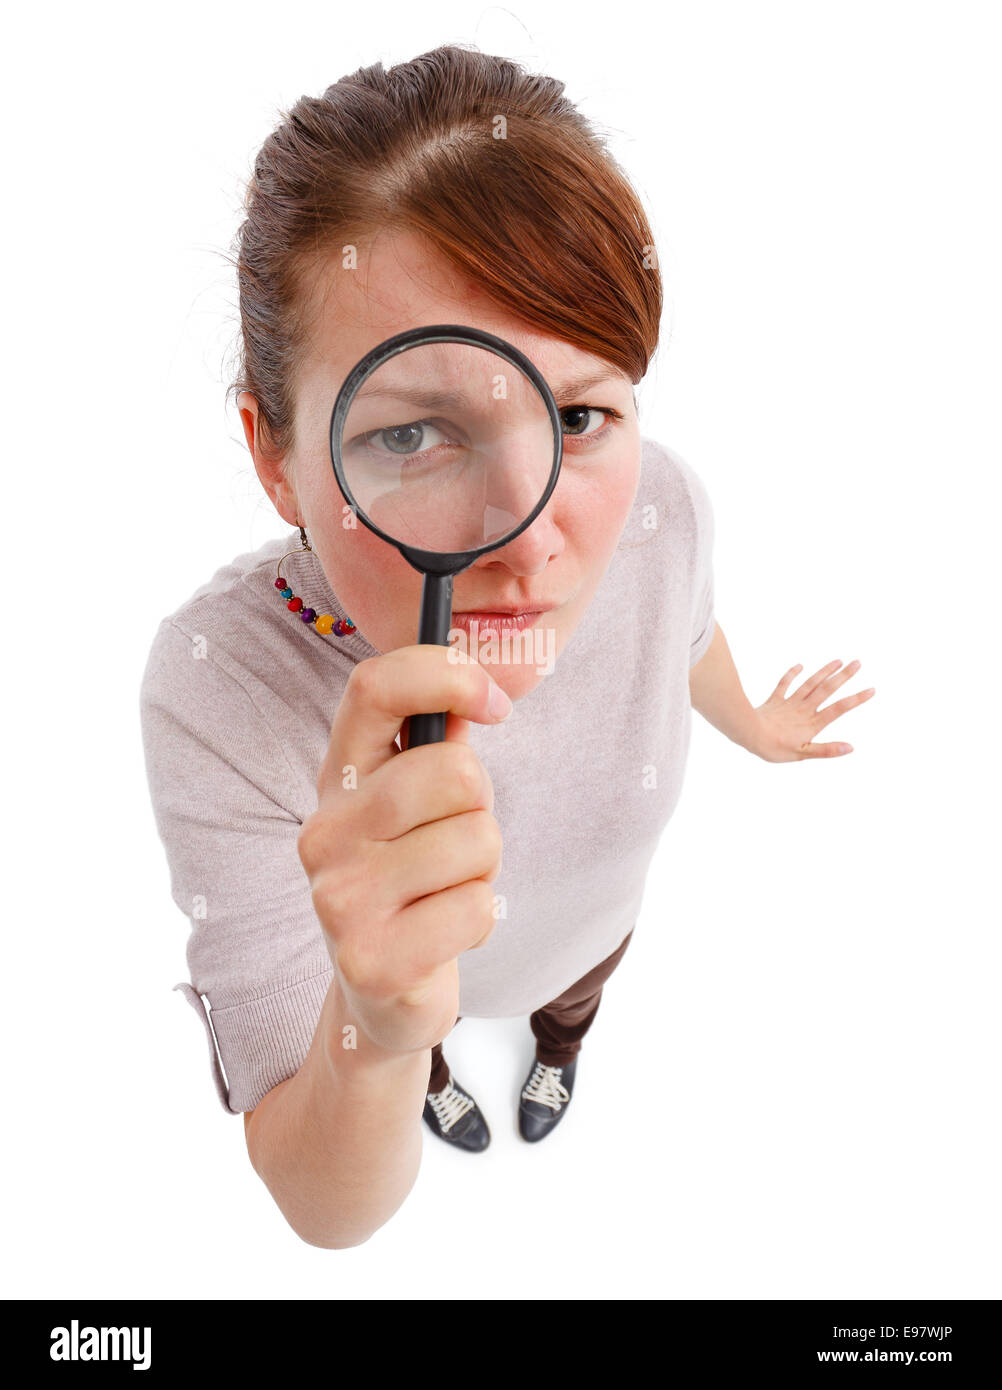 Casual young woman looking through magnifier lens as detective, analyzing or finding something - Stock Image